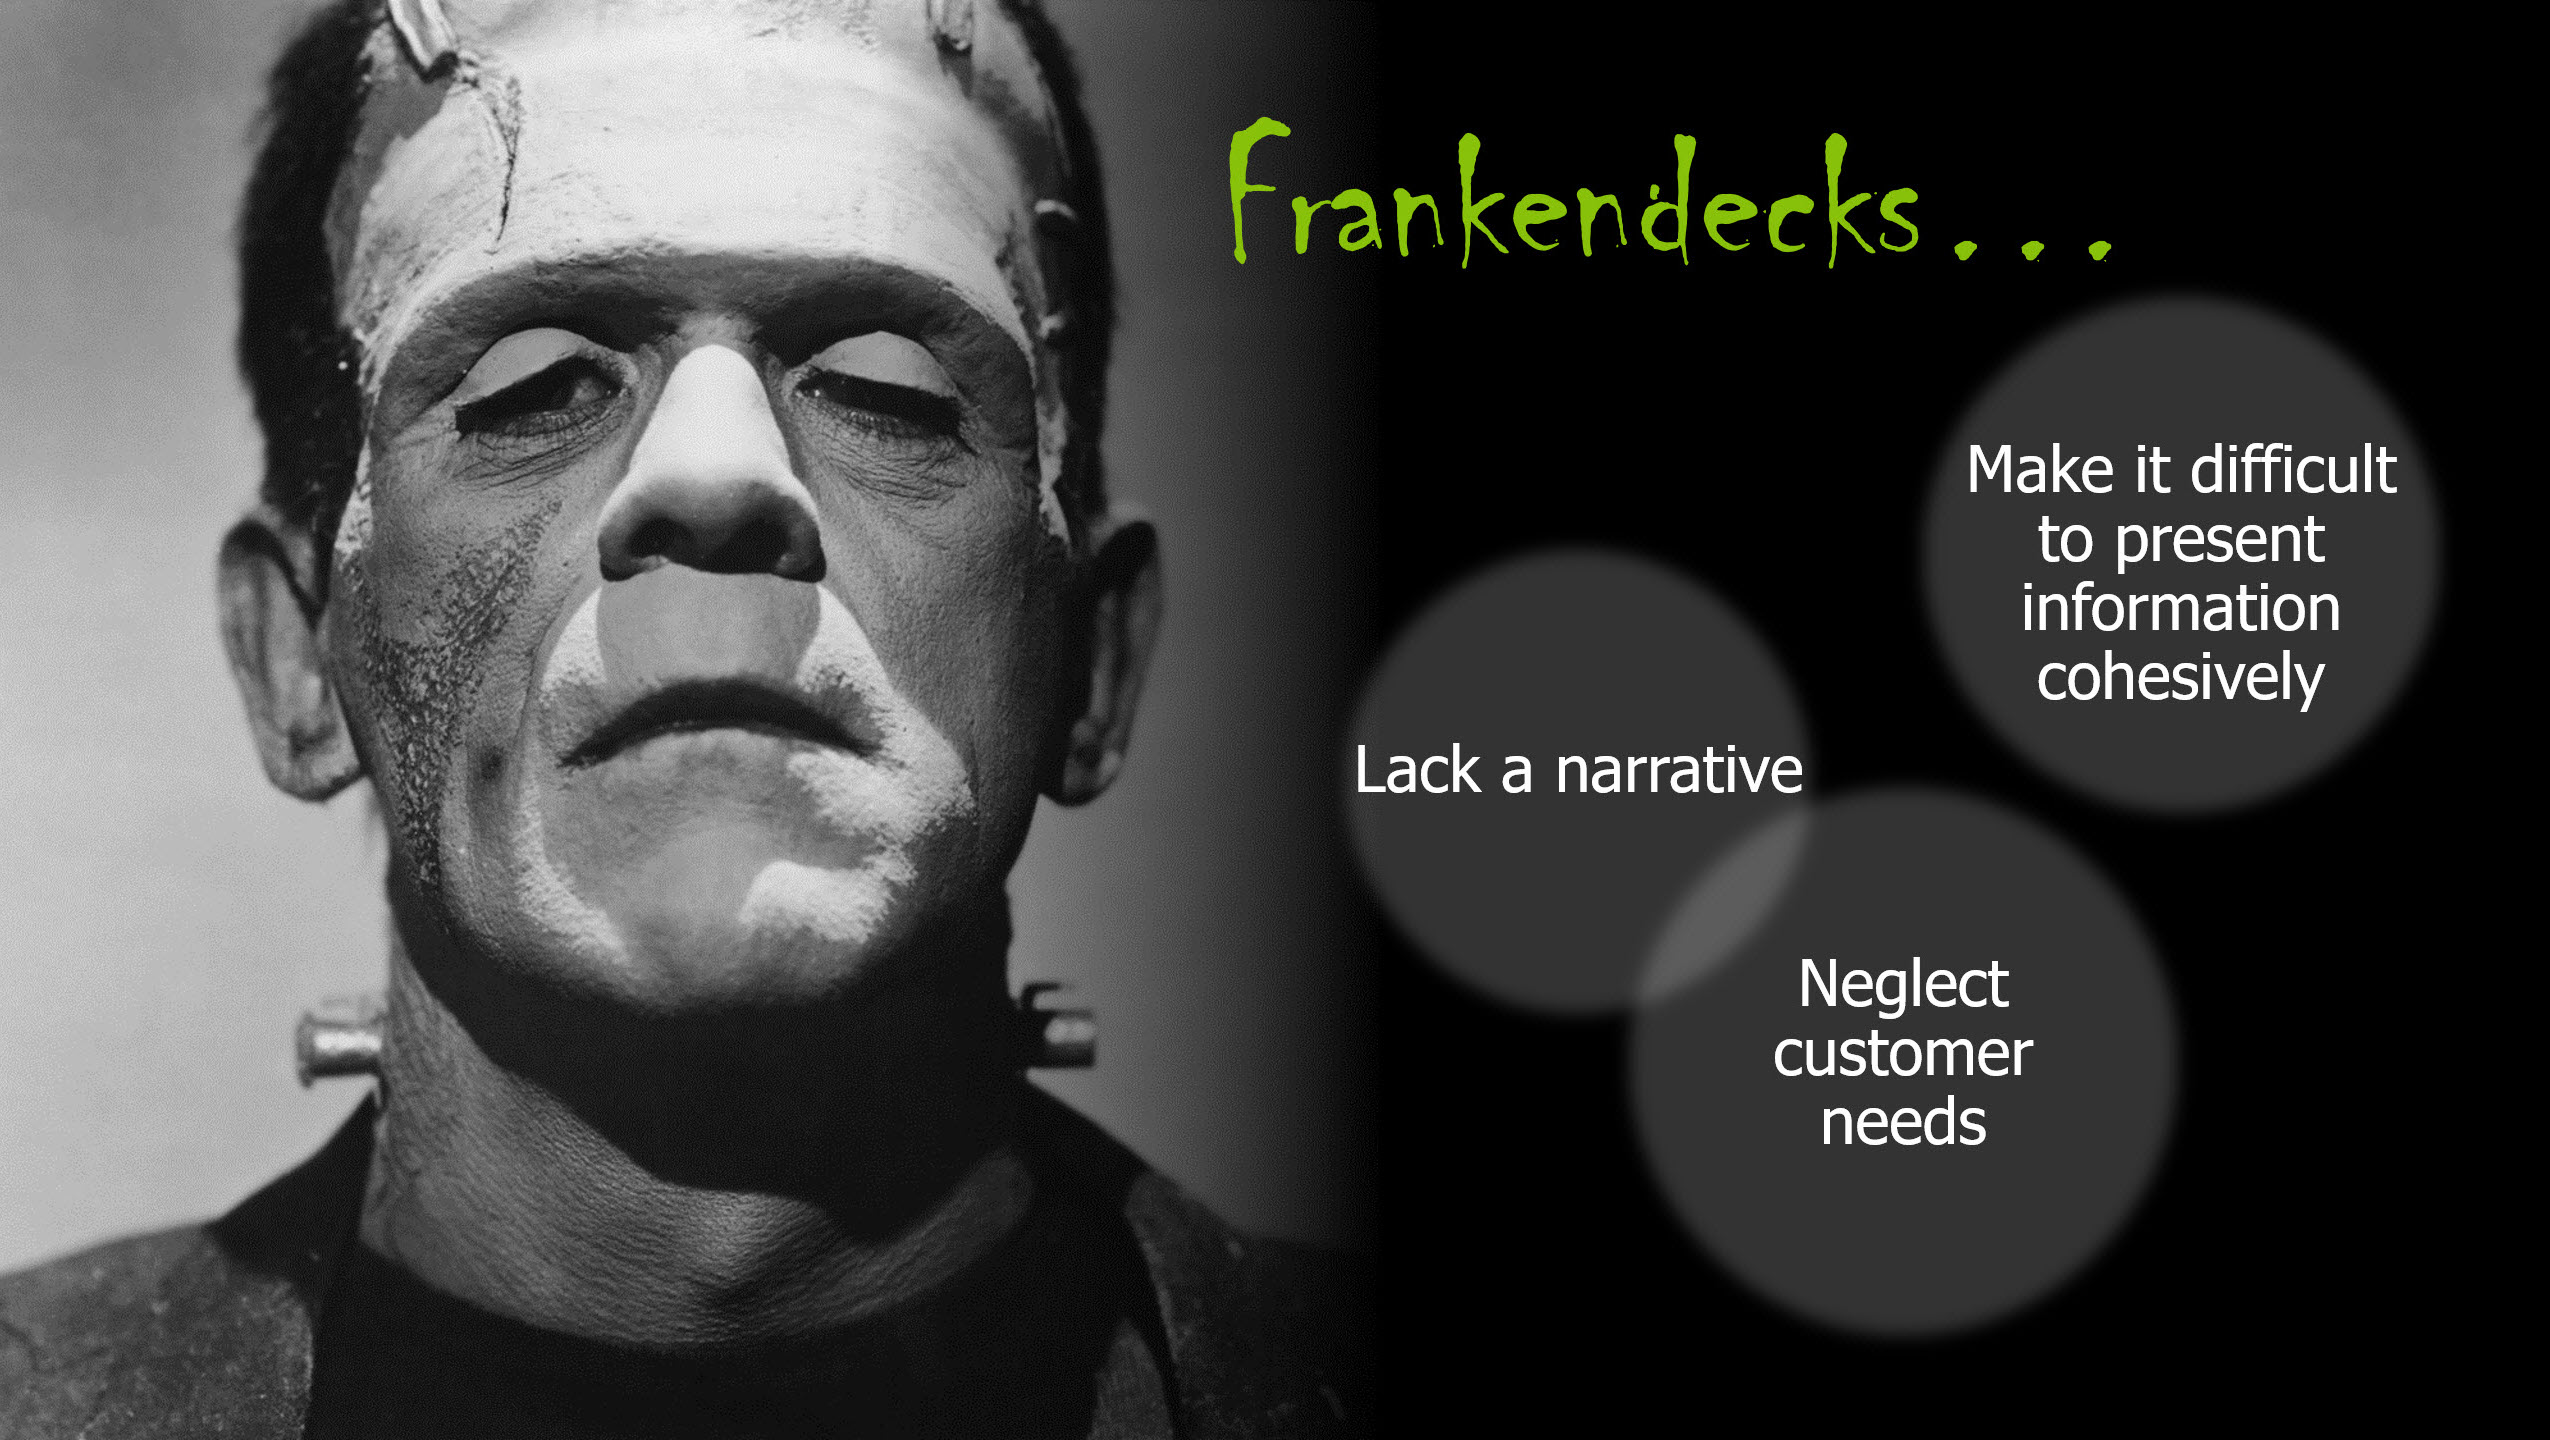 Frankendecks - bad PPT presentations